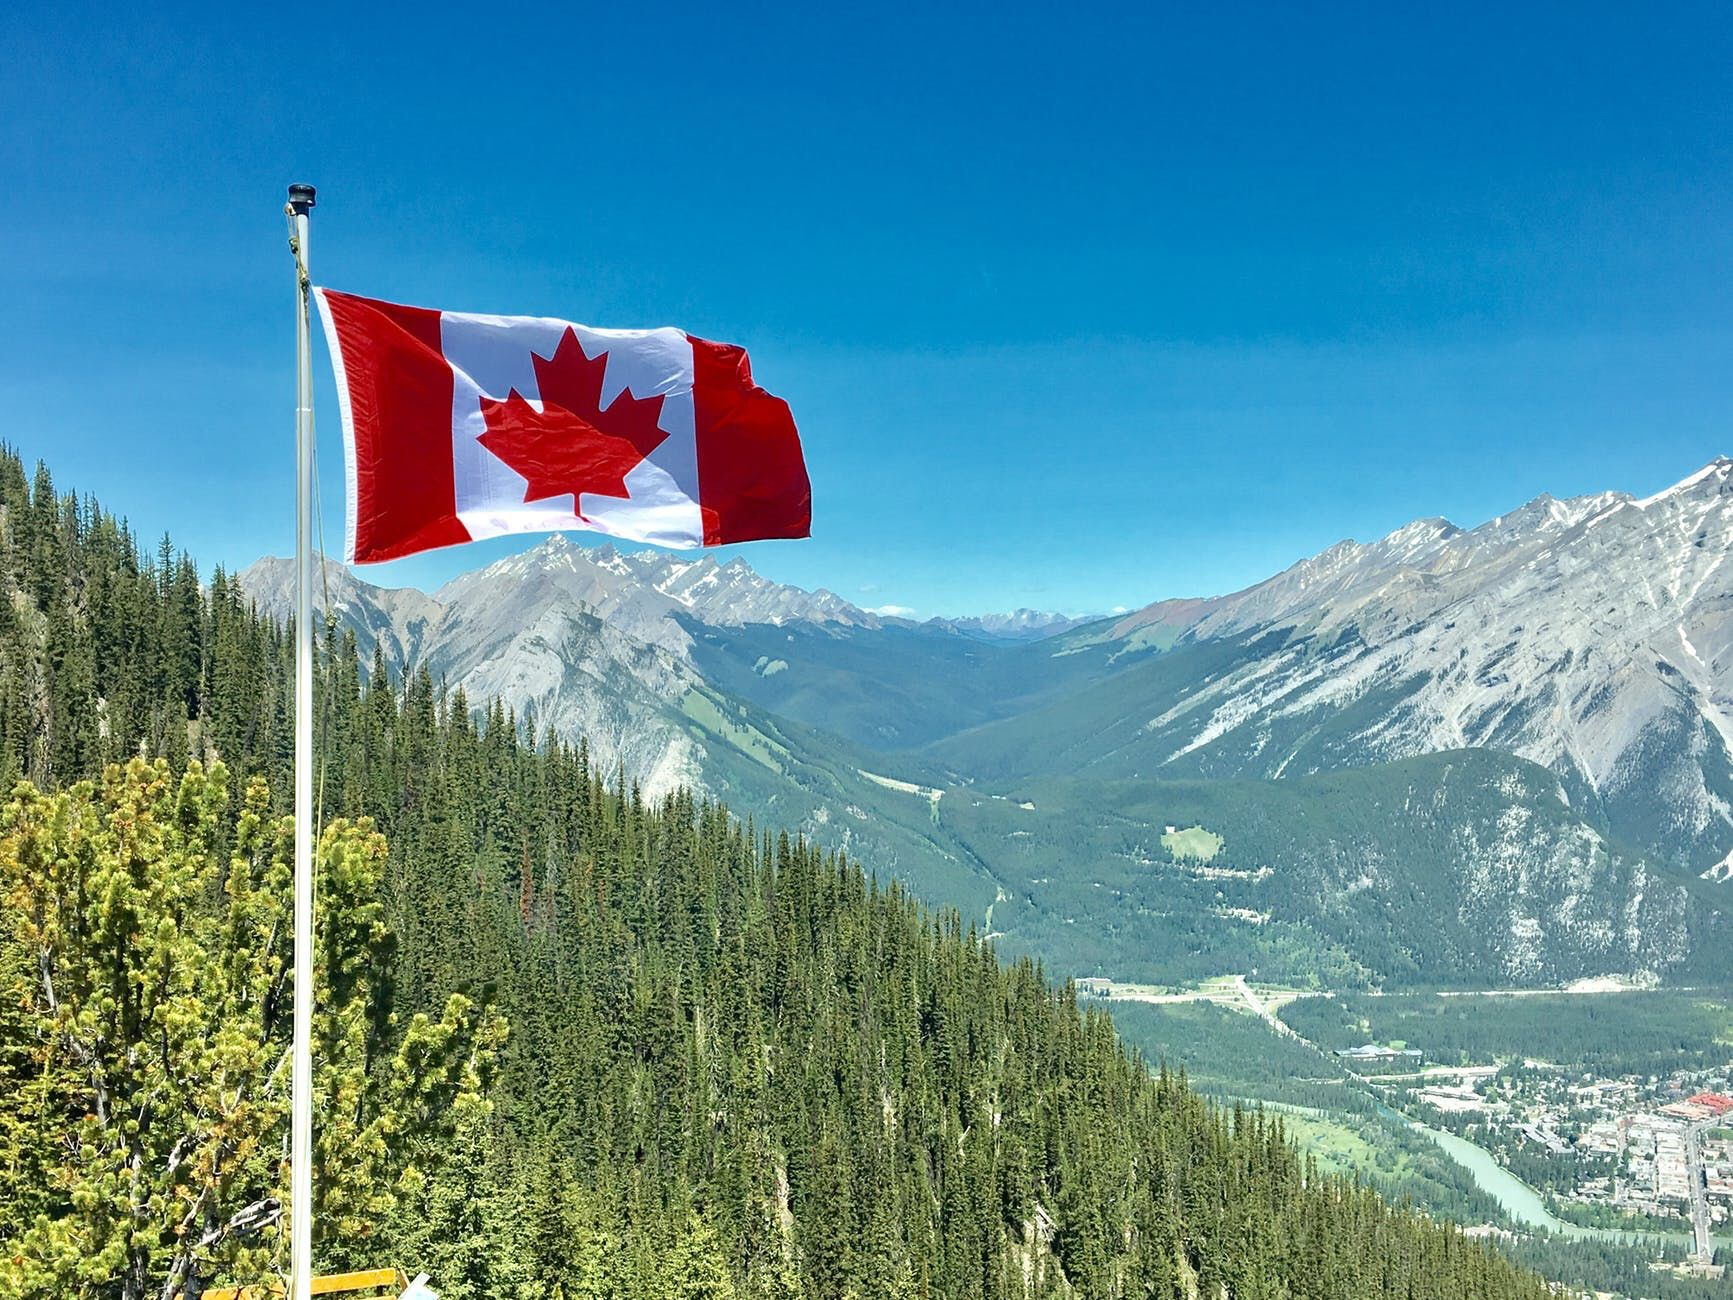 My Adventure to Canada, well sort of (With images